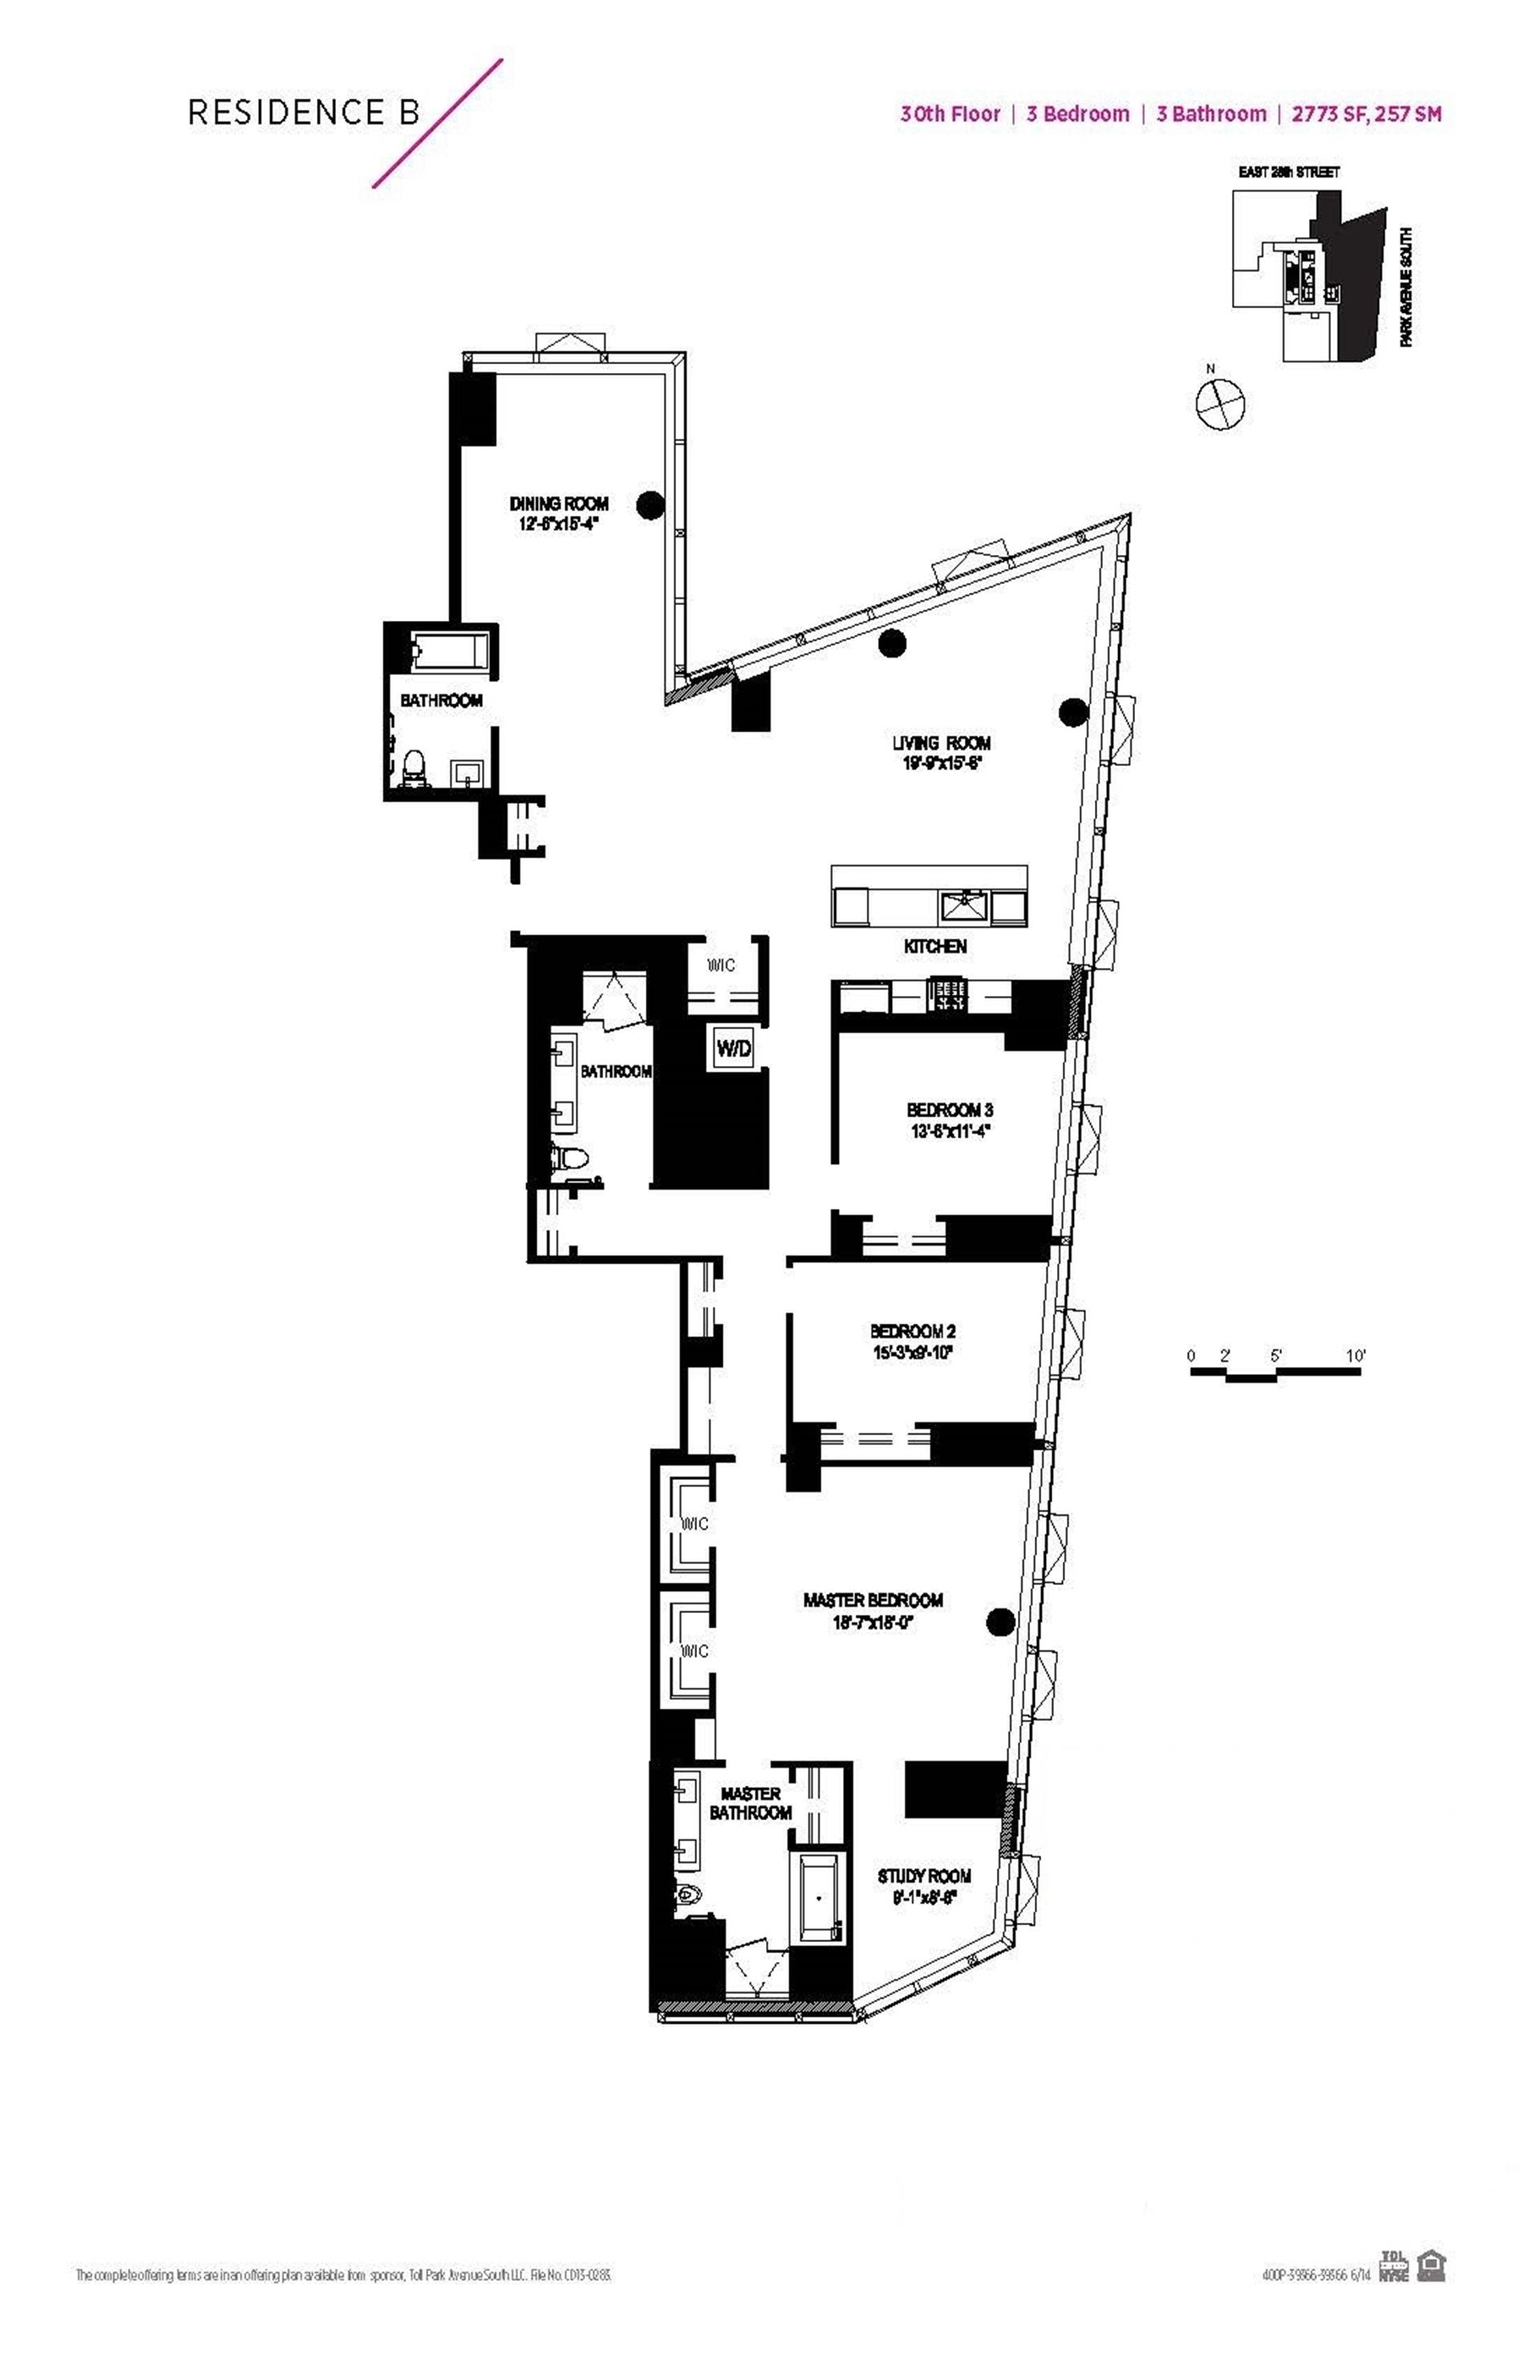 Floor plan of 400 Park Avenue South, 30B - Midtown, New York